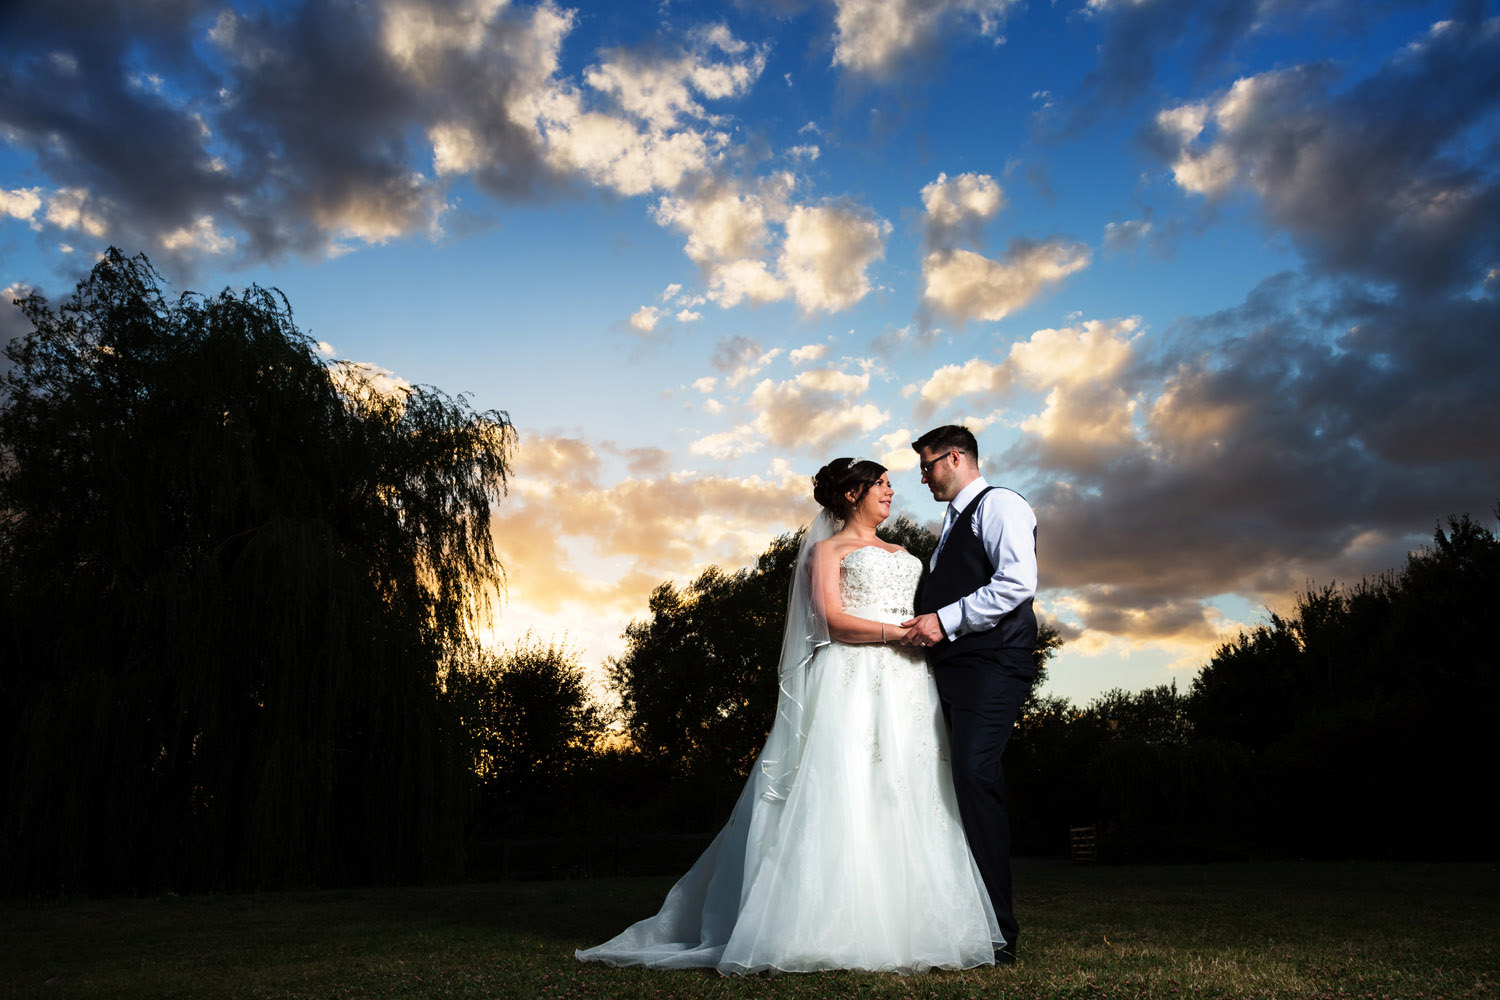 Bride and groom with a clearing evening sky over Pitsea Essex